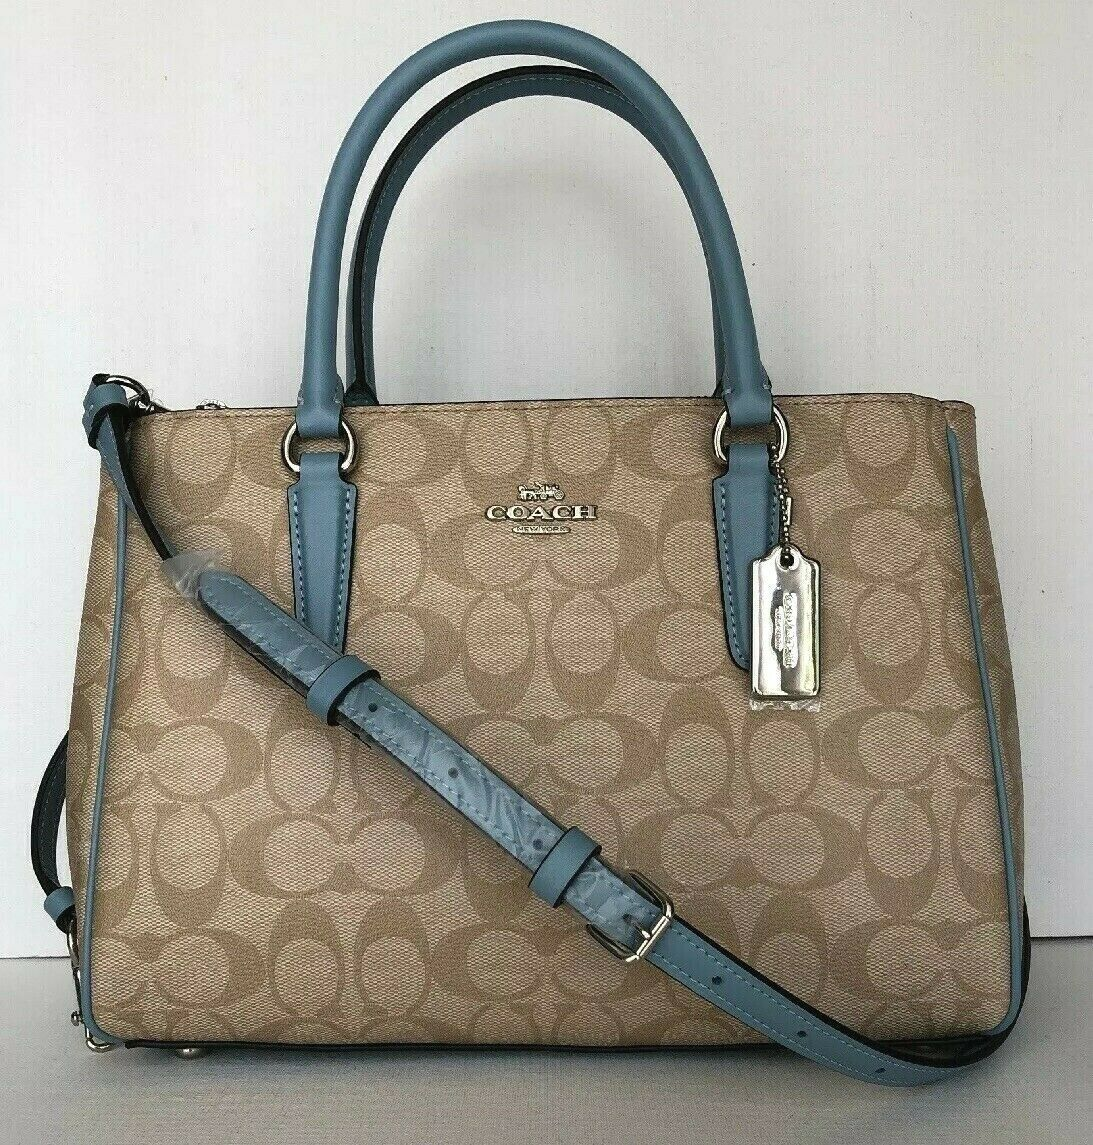 New Coach 67026 Surrey Carryall Tote Coated Canvas handbag Lt. Khaki Cornflower